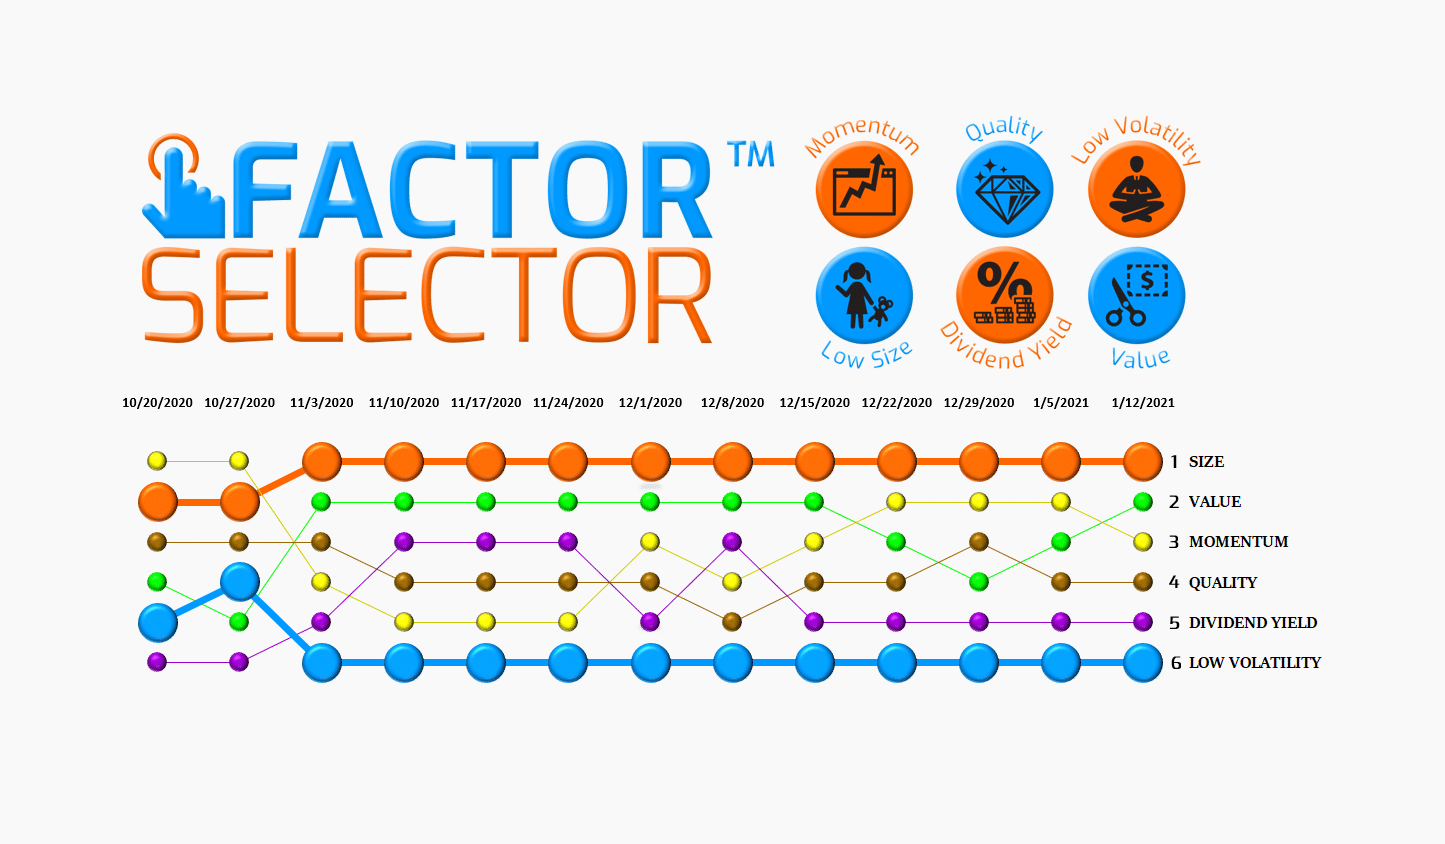 Factor Selector™  – 01/13/21 via @https://www.pinterest.com/market_scholars